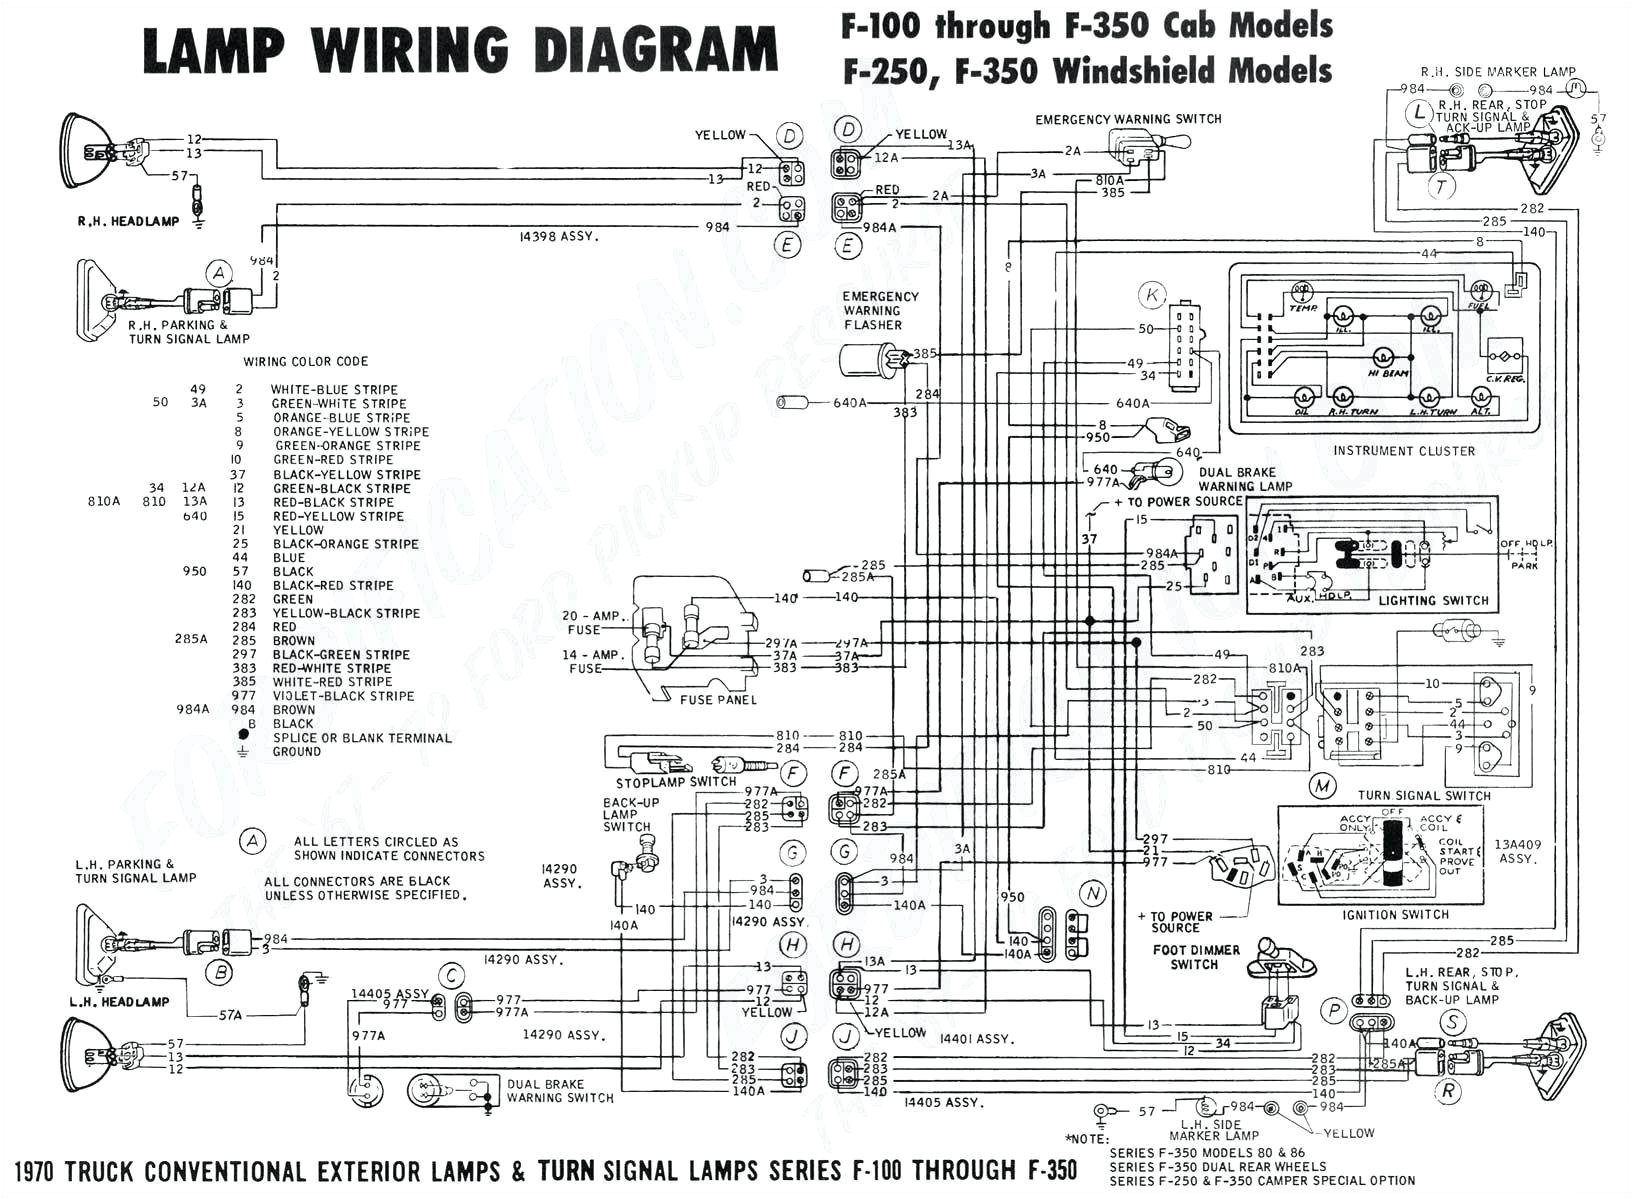 electrical switch wiring diagram free download premium wiring motorcycle electrical wiring on off switch free download wiring